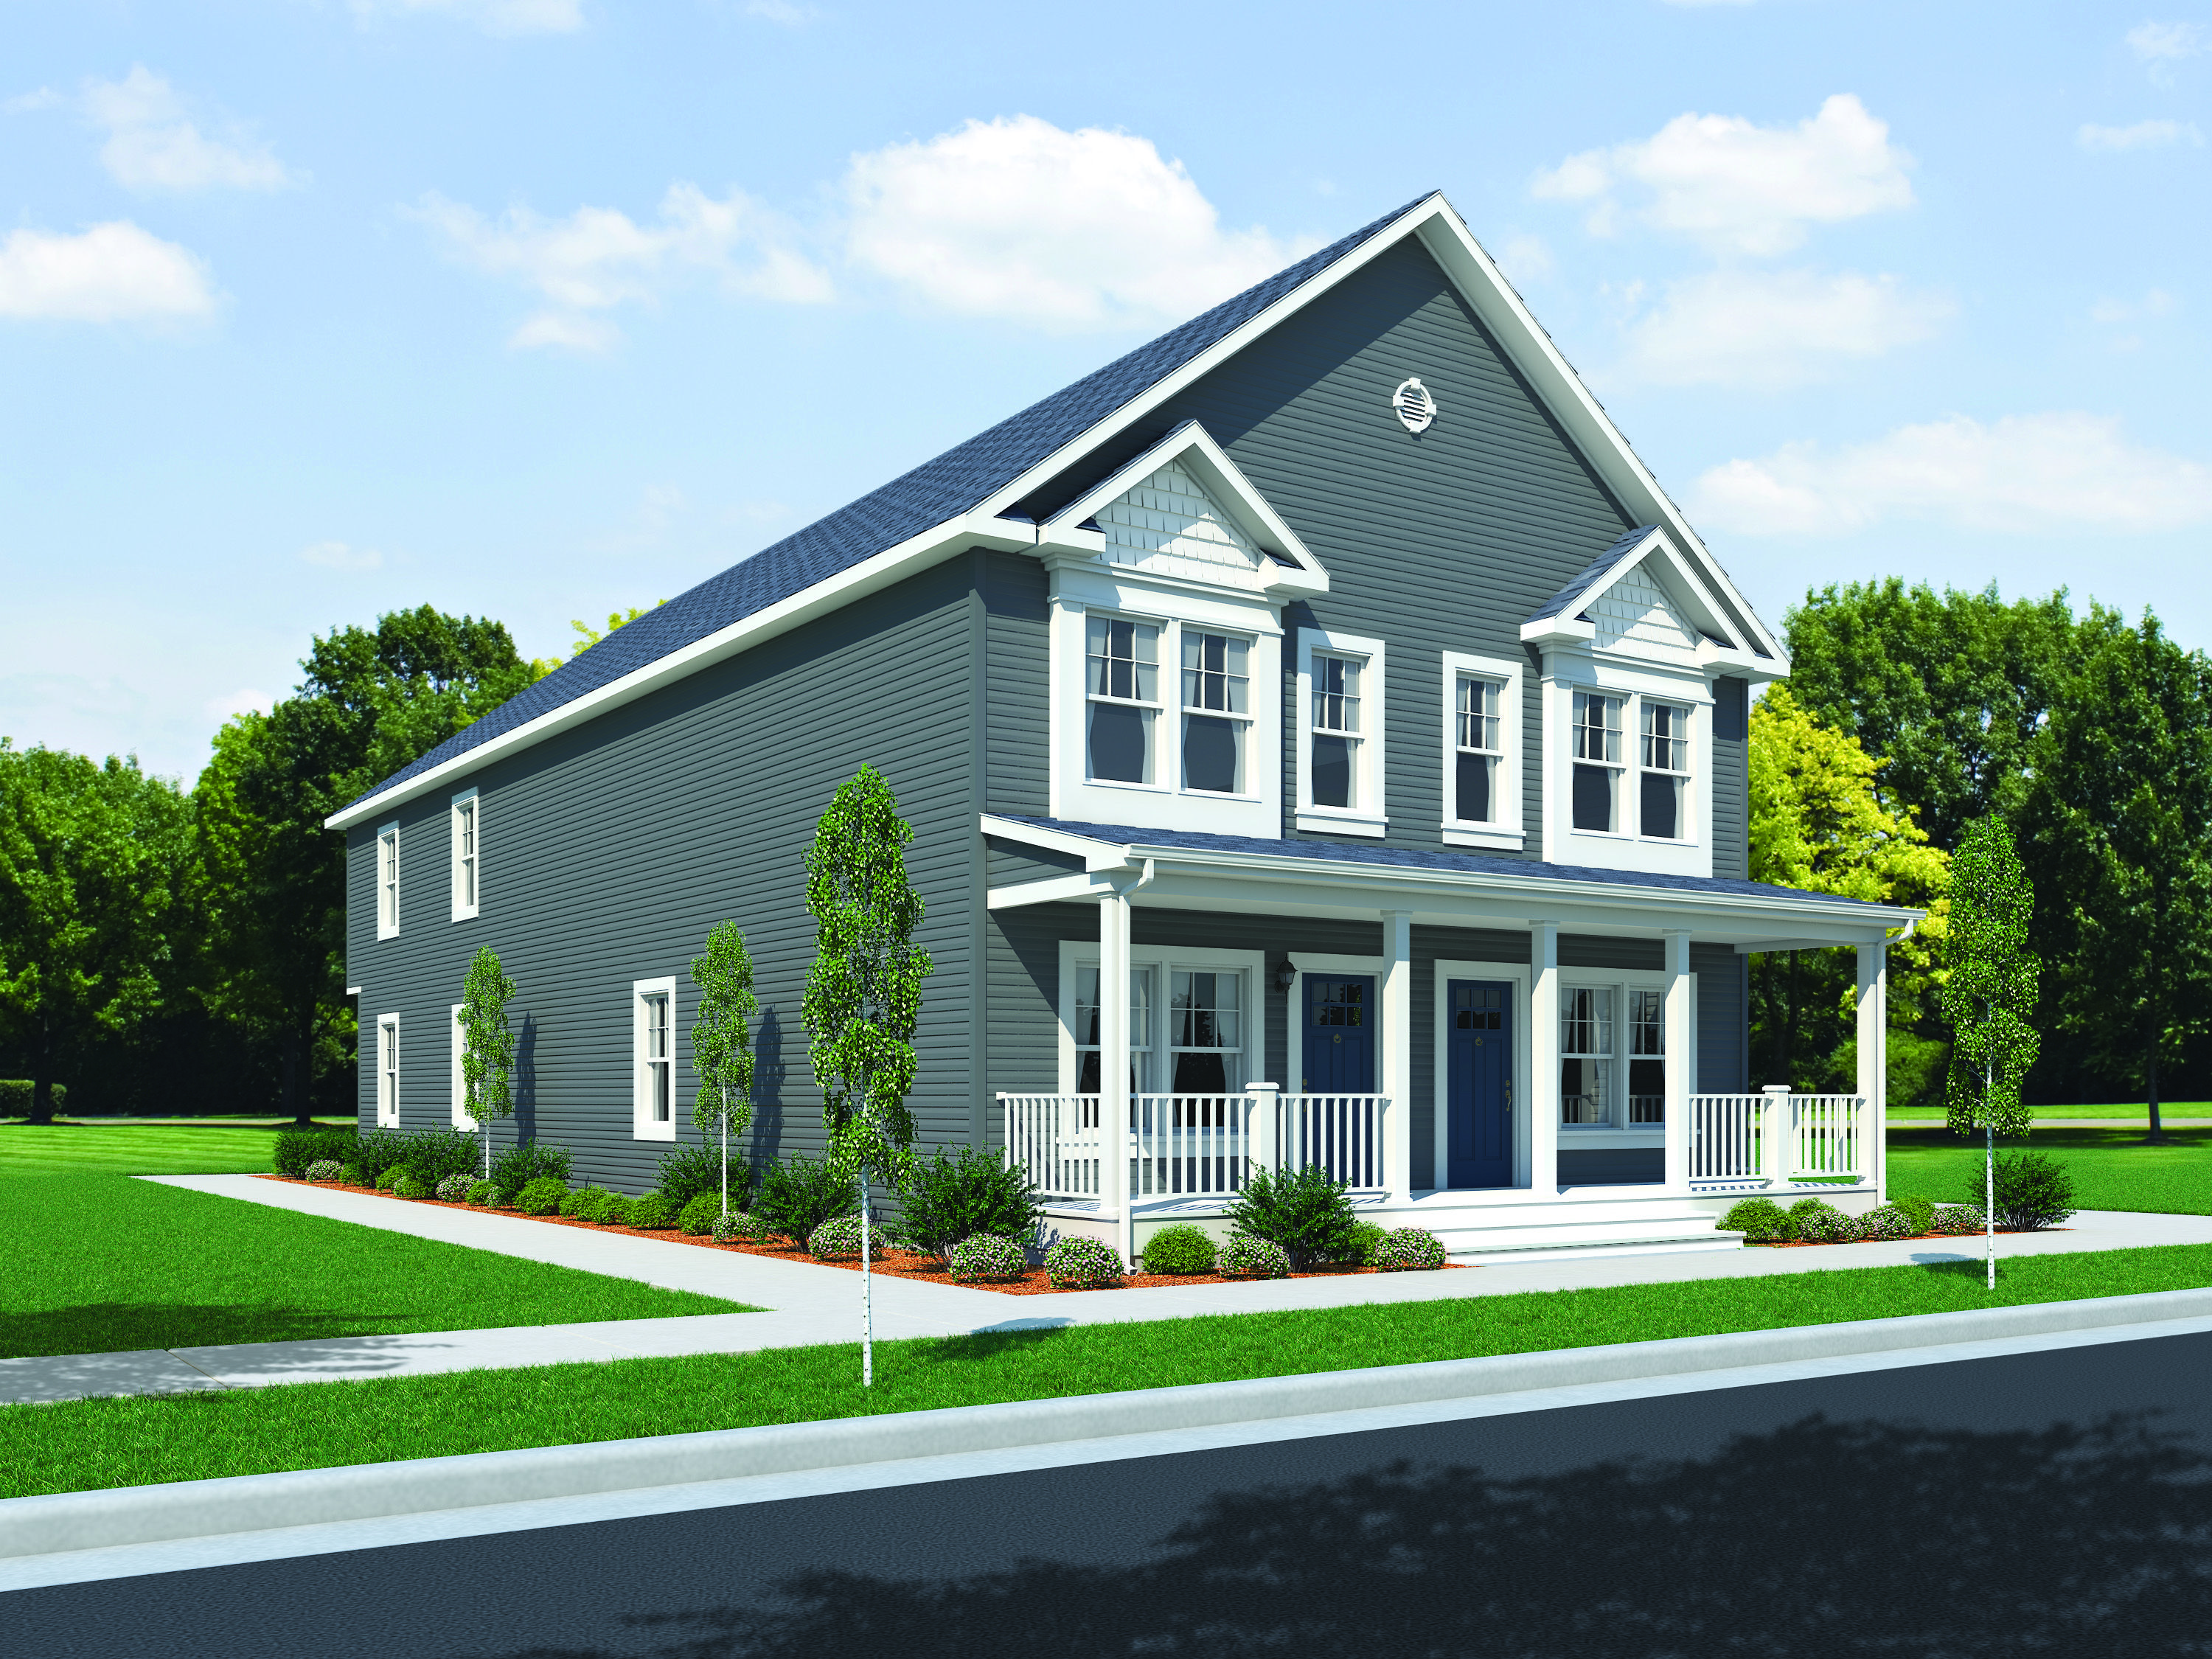 All American Homes humboldt park duplex floorplan of urban home collection - modular